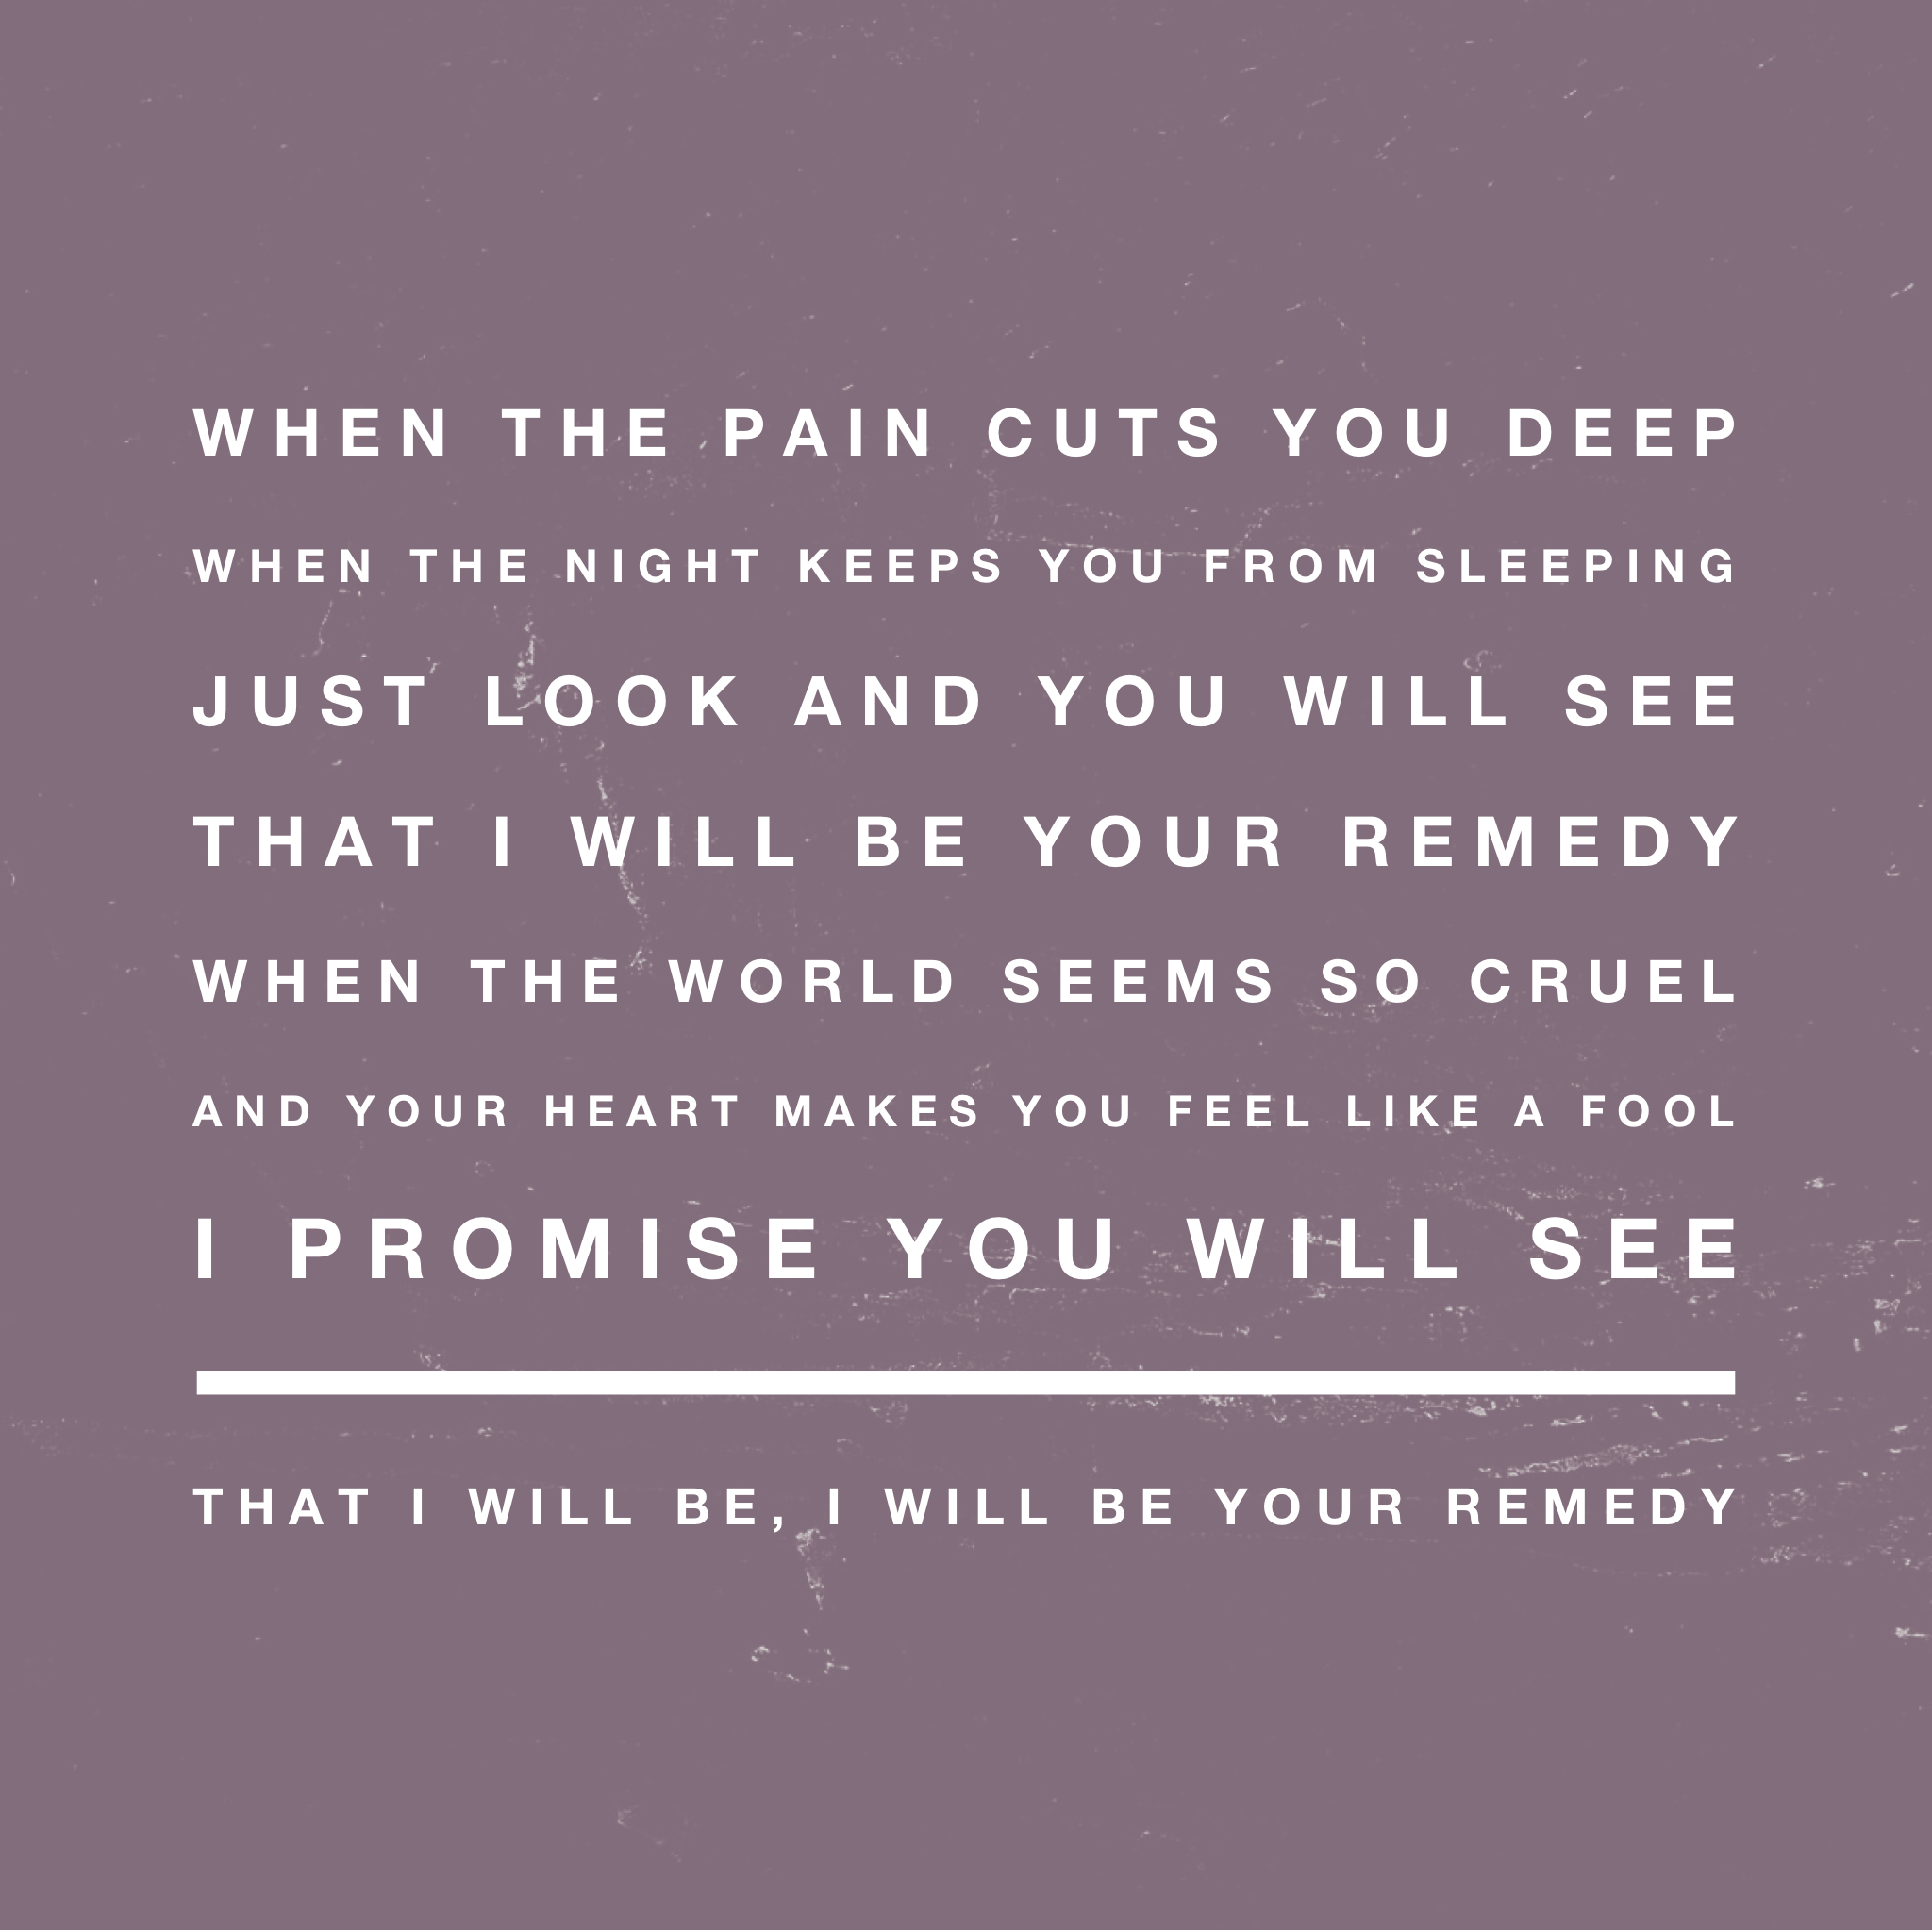 This whole song is God's promise to me and to you..He will be your remedy